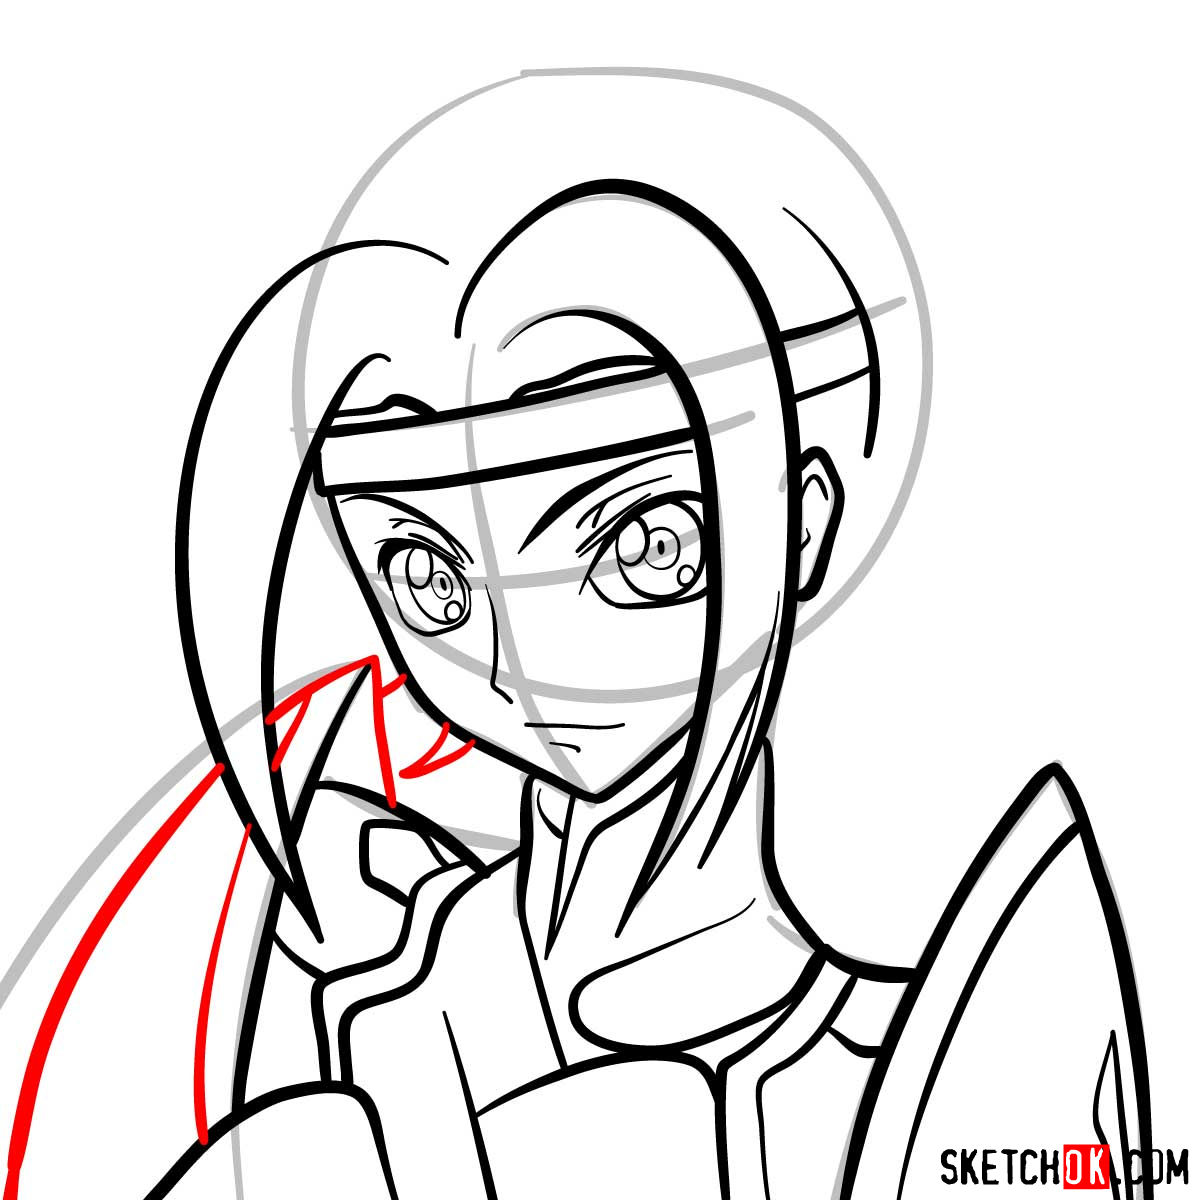 Making the drawing of Kallen Kozuki's face from Code Geass - step 10